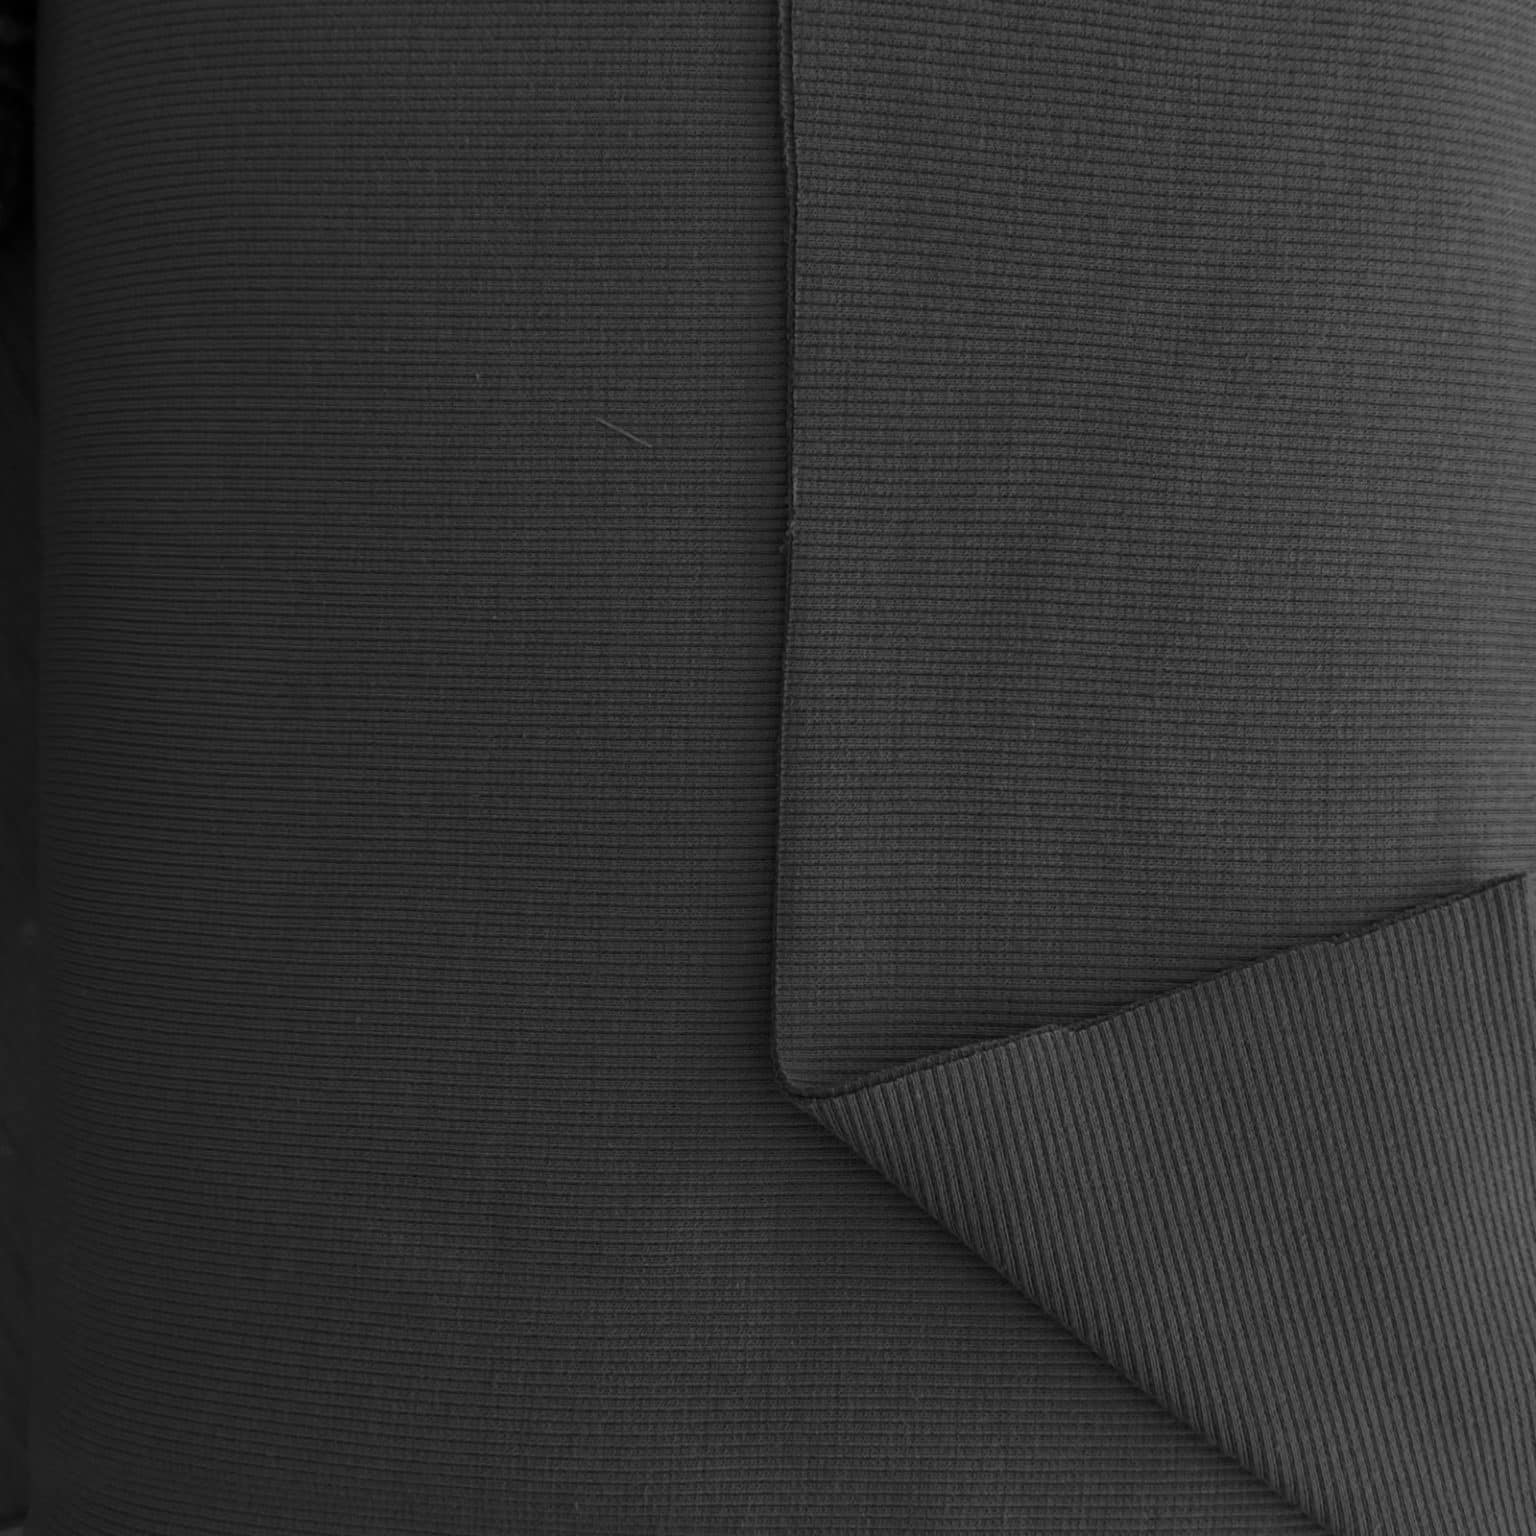 jersey fabric | Jersey Ribbing Cuffing Black | More Sewing